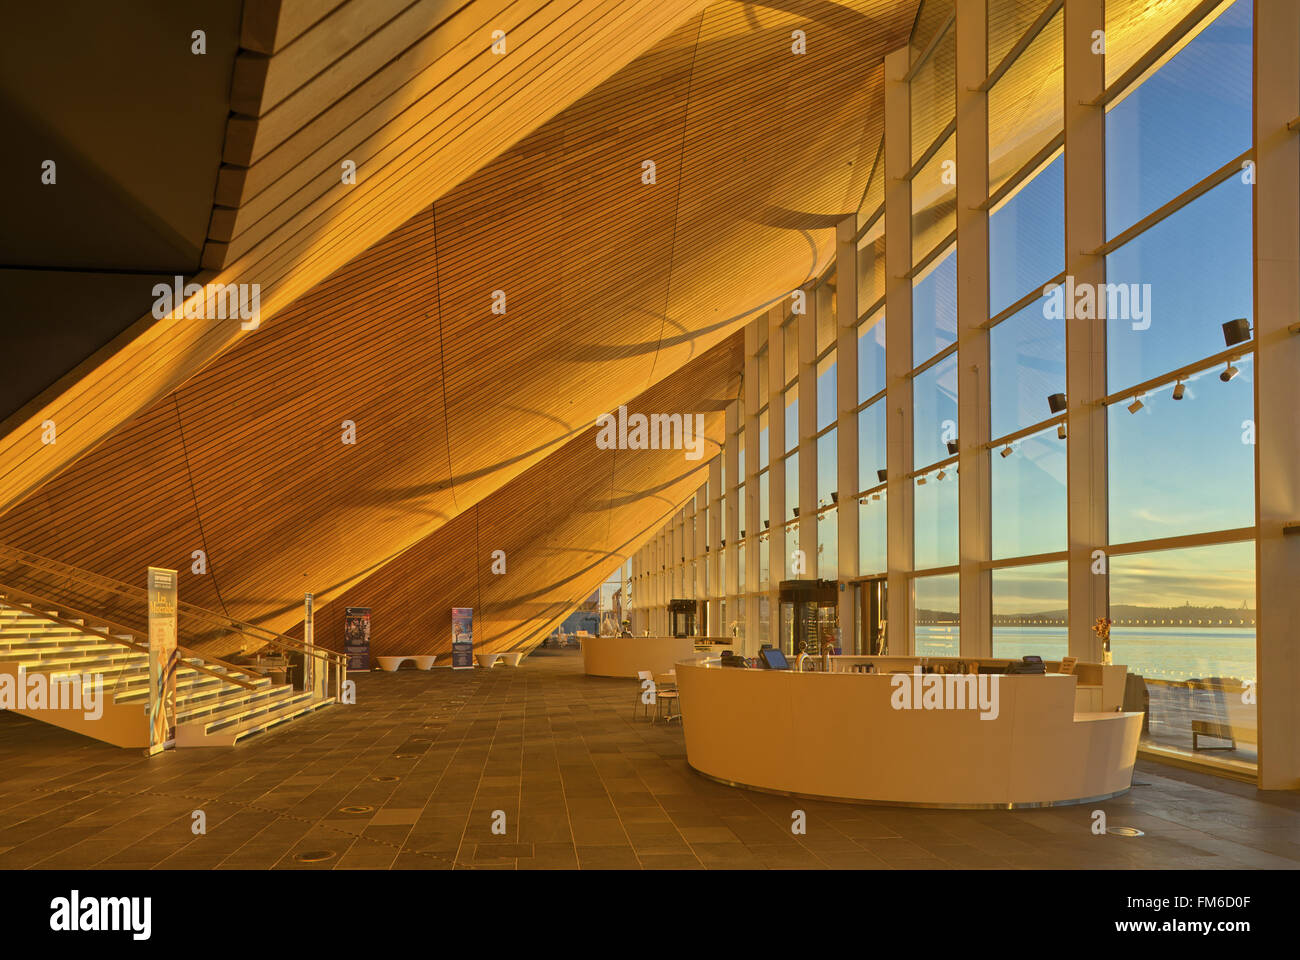 Kilden Theatre and Concert hall in Kristiansand, designed by ALA Stock Photo: 98486879 - Alamy